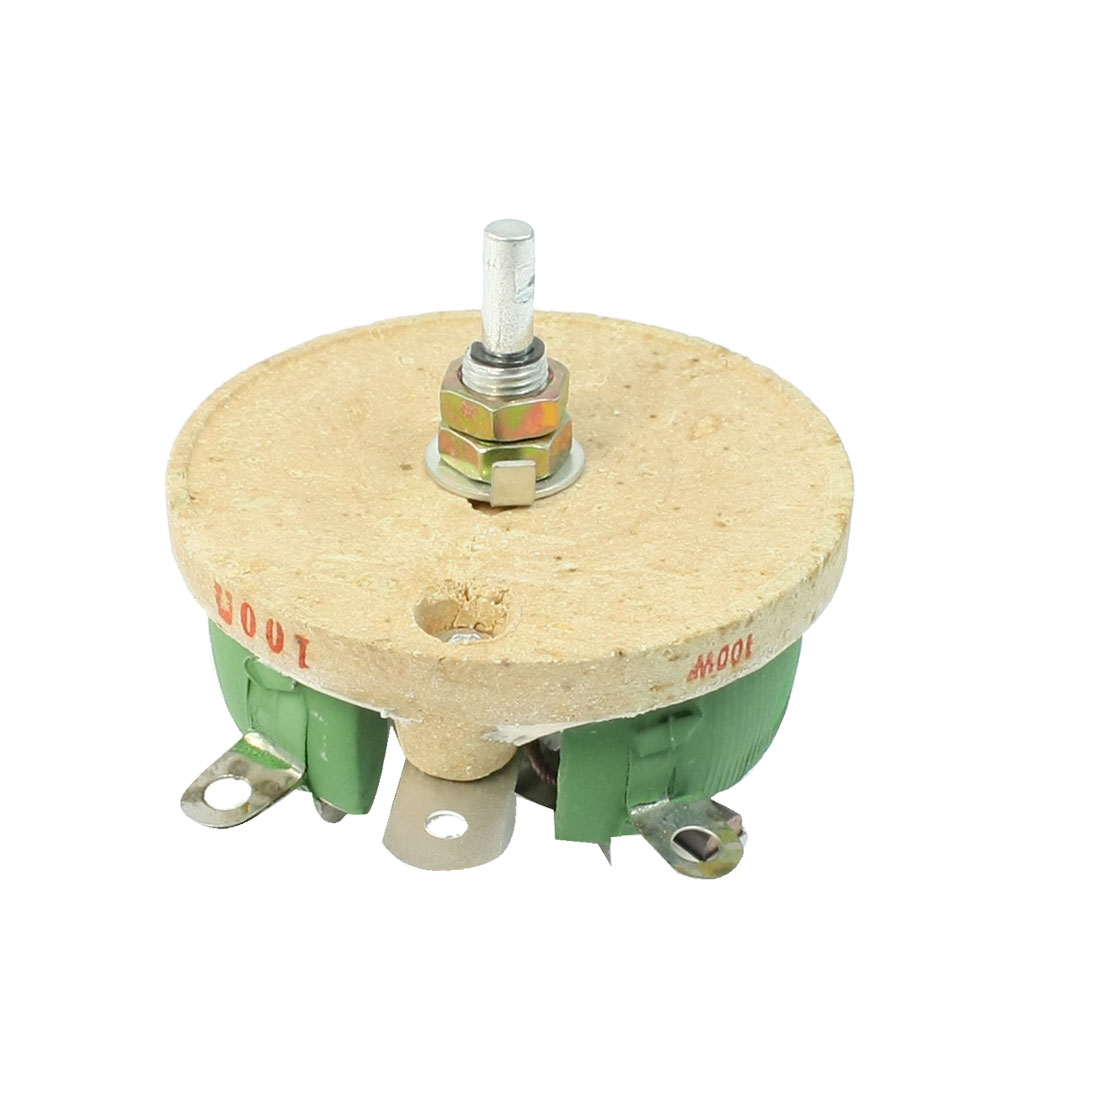 Ceramic Tray Adjustable Wirewound Resistor Rheostat 100W 100 Ohm